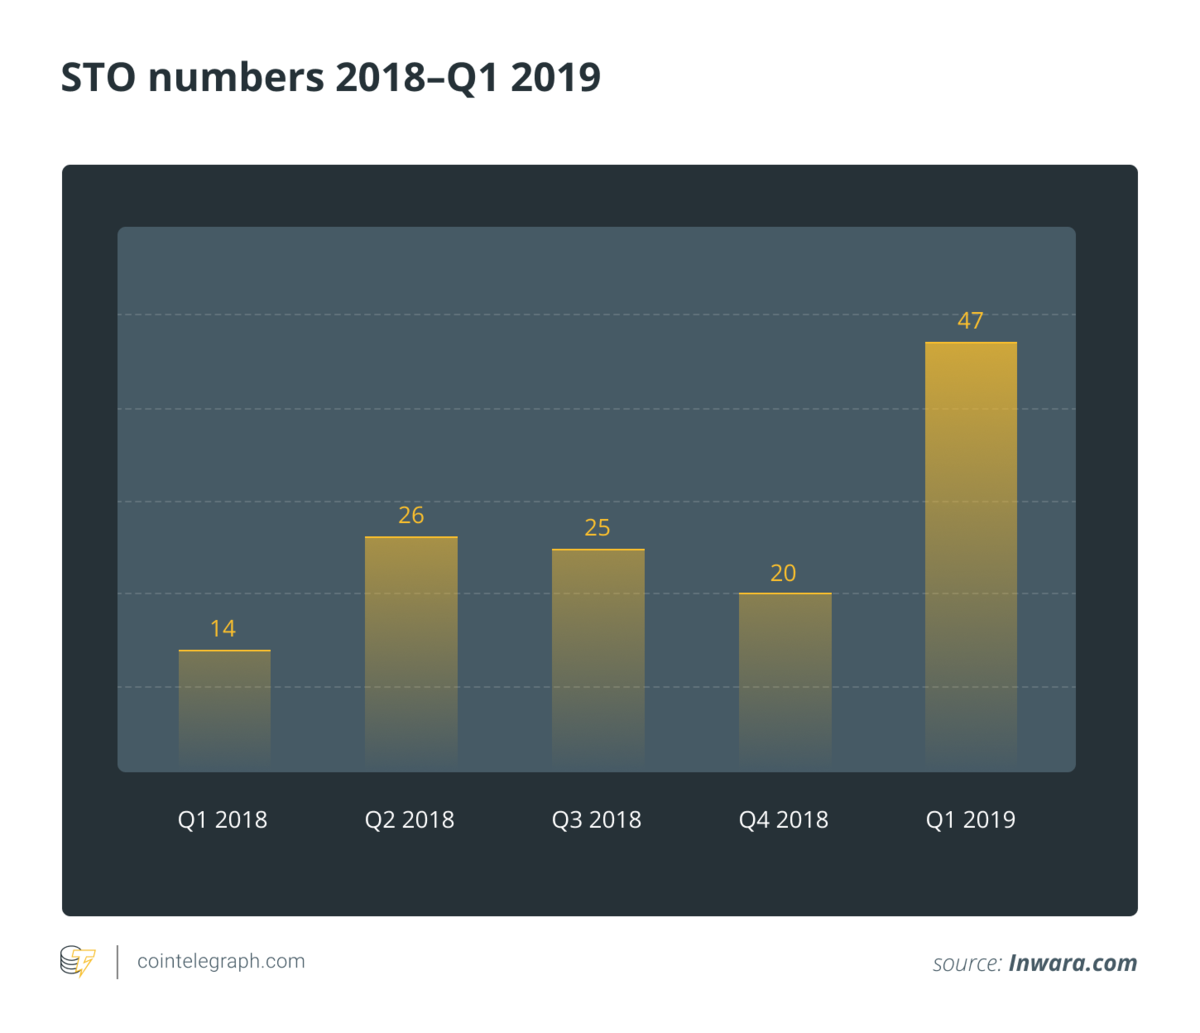 STO numbers are growing in 2019